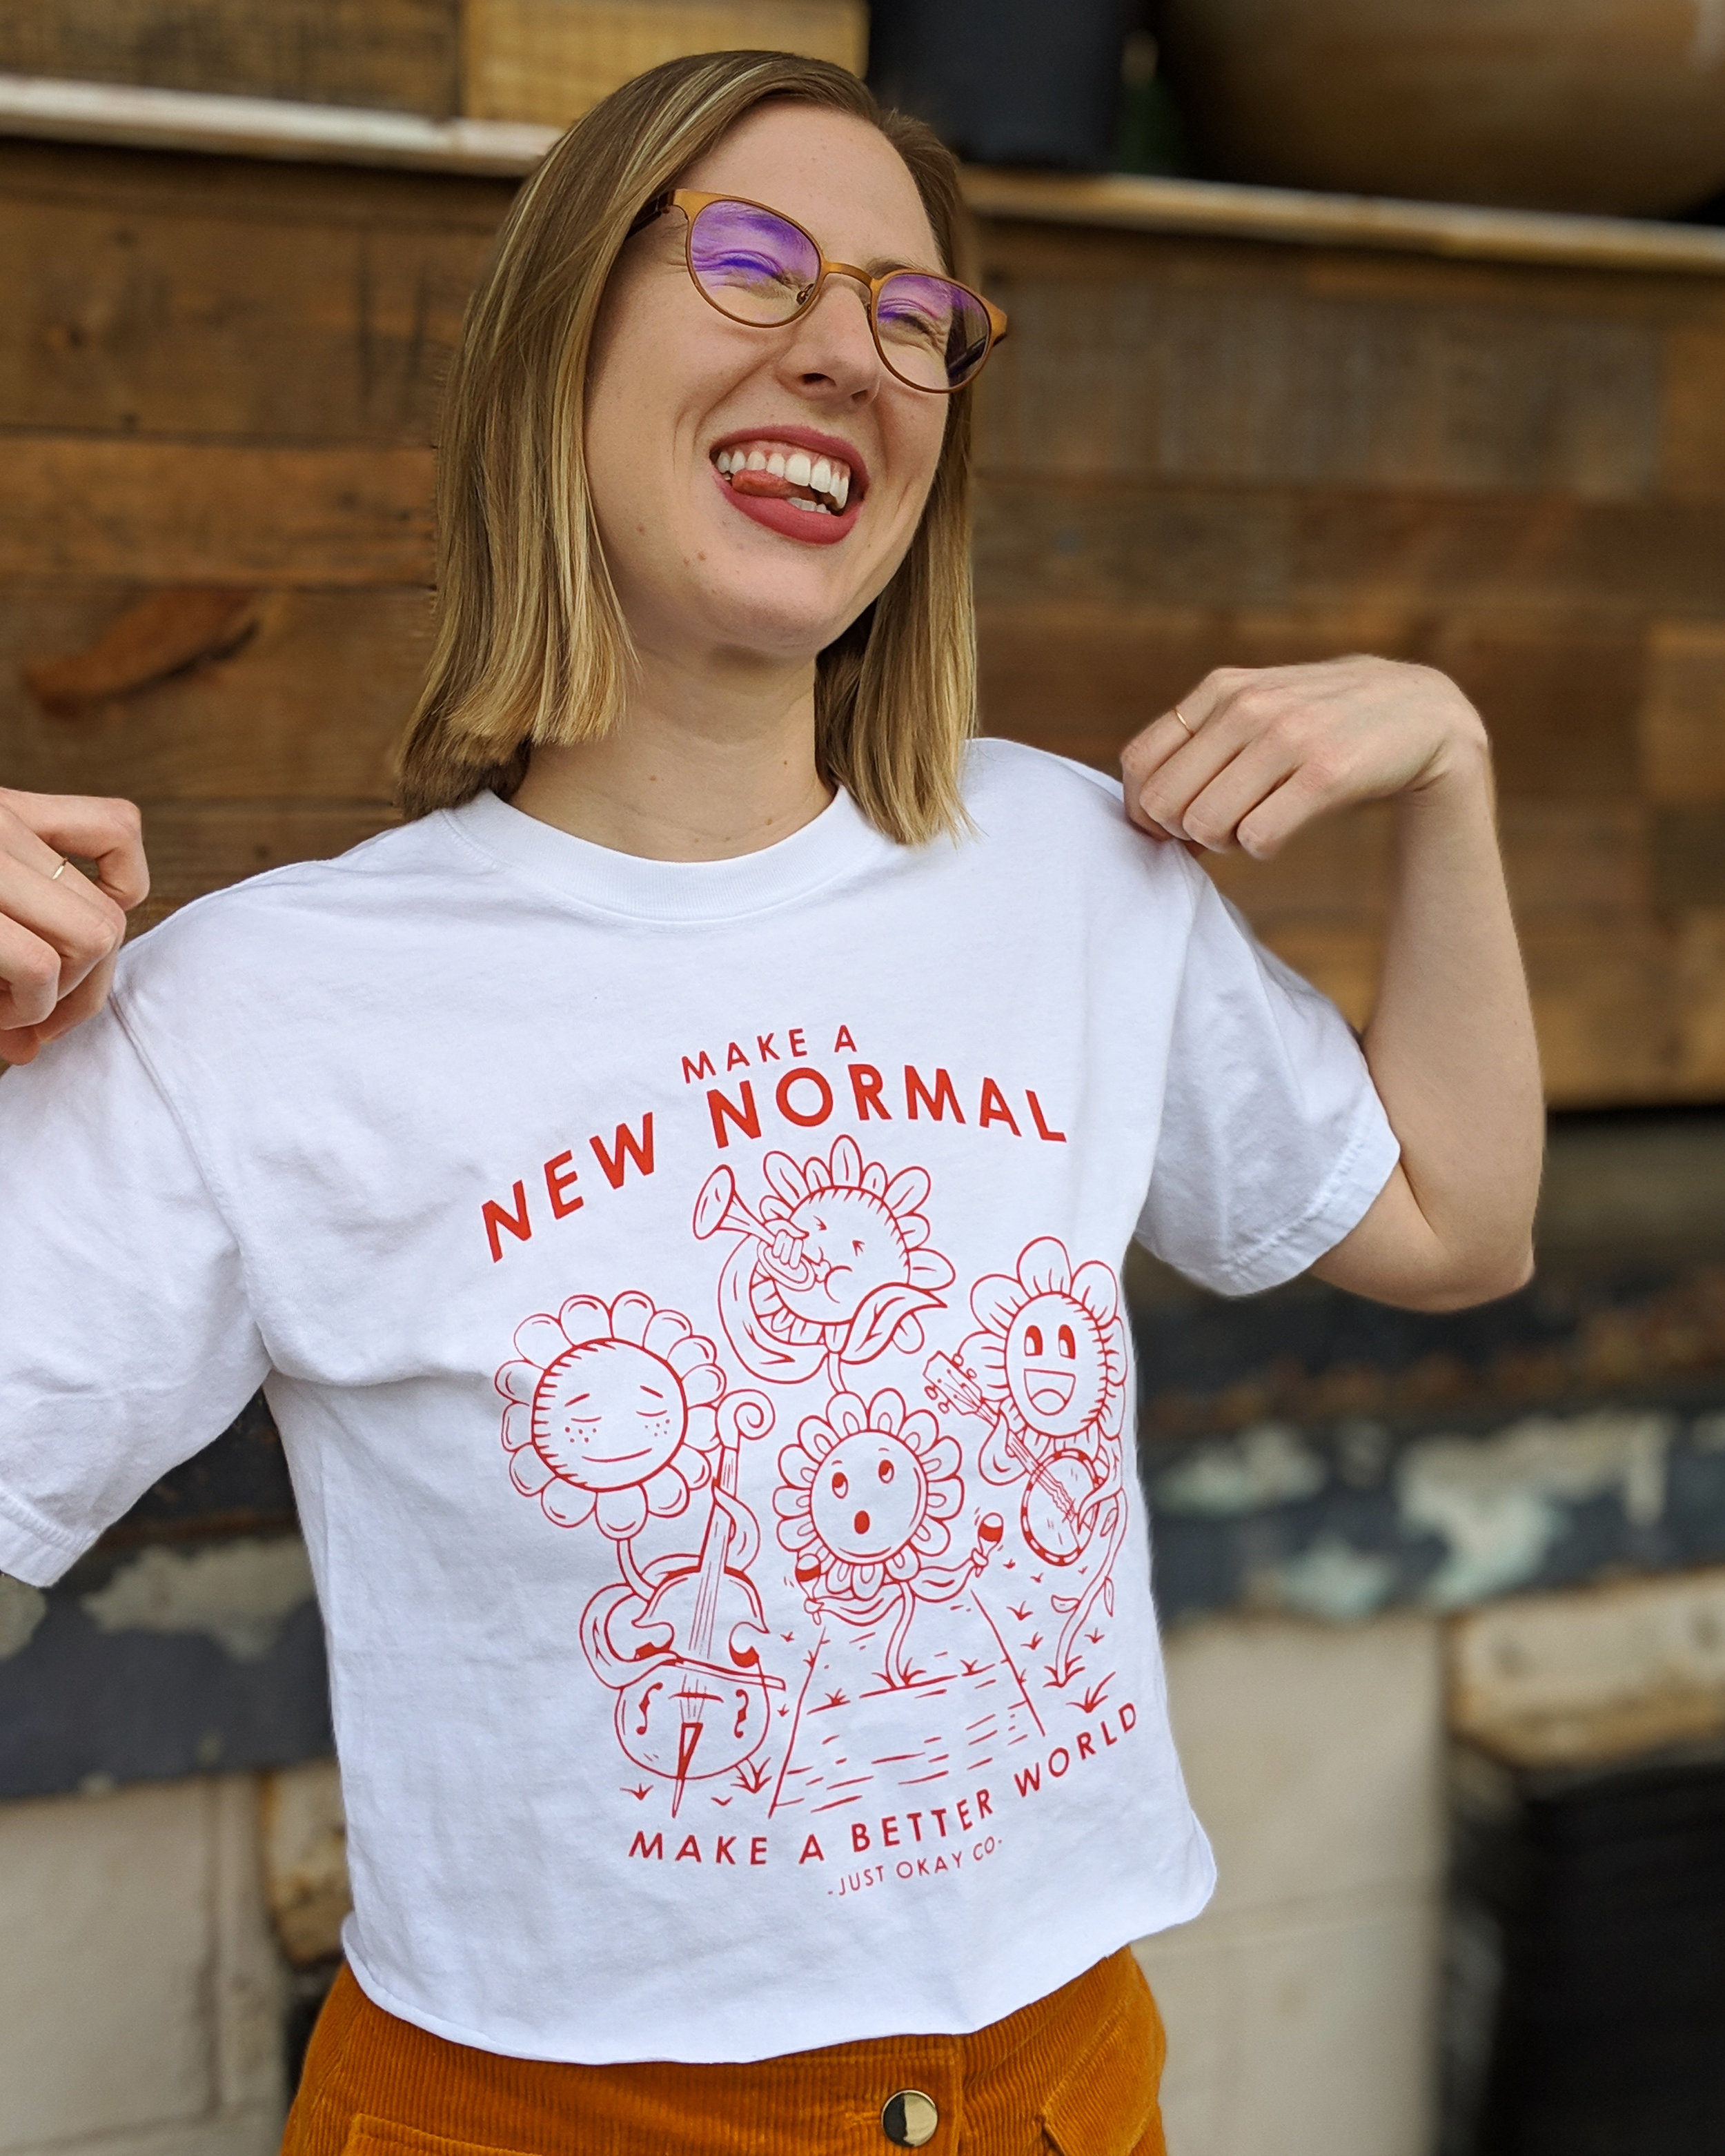 Make-a-new-normal-t-shirt-girl_Just_Okay_Co.jpg